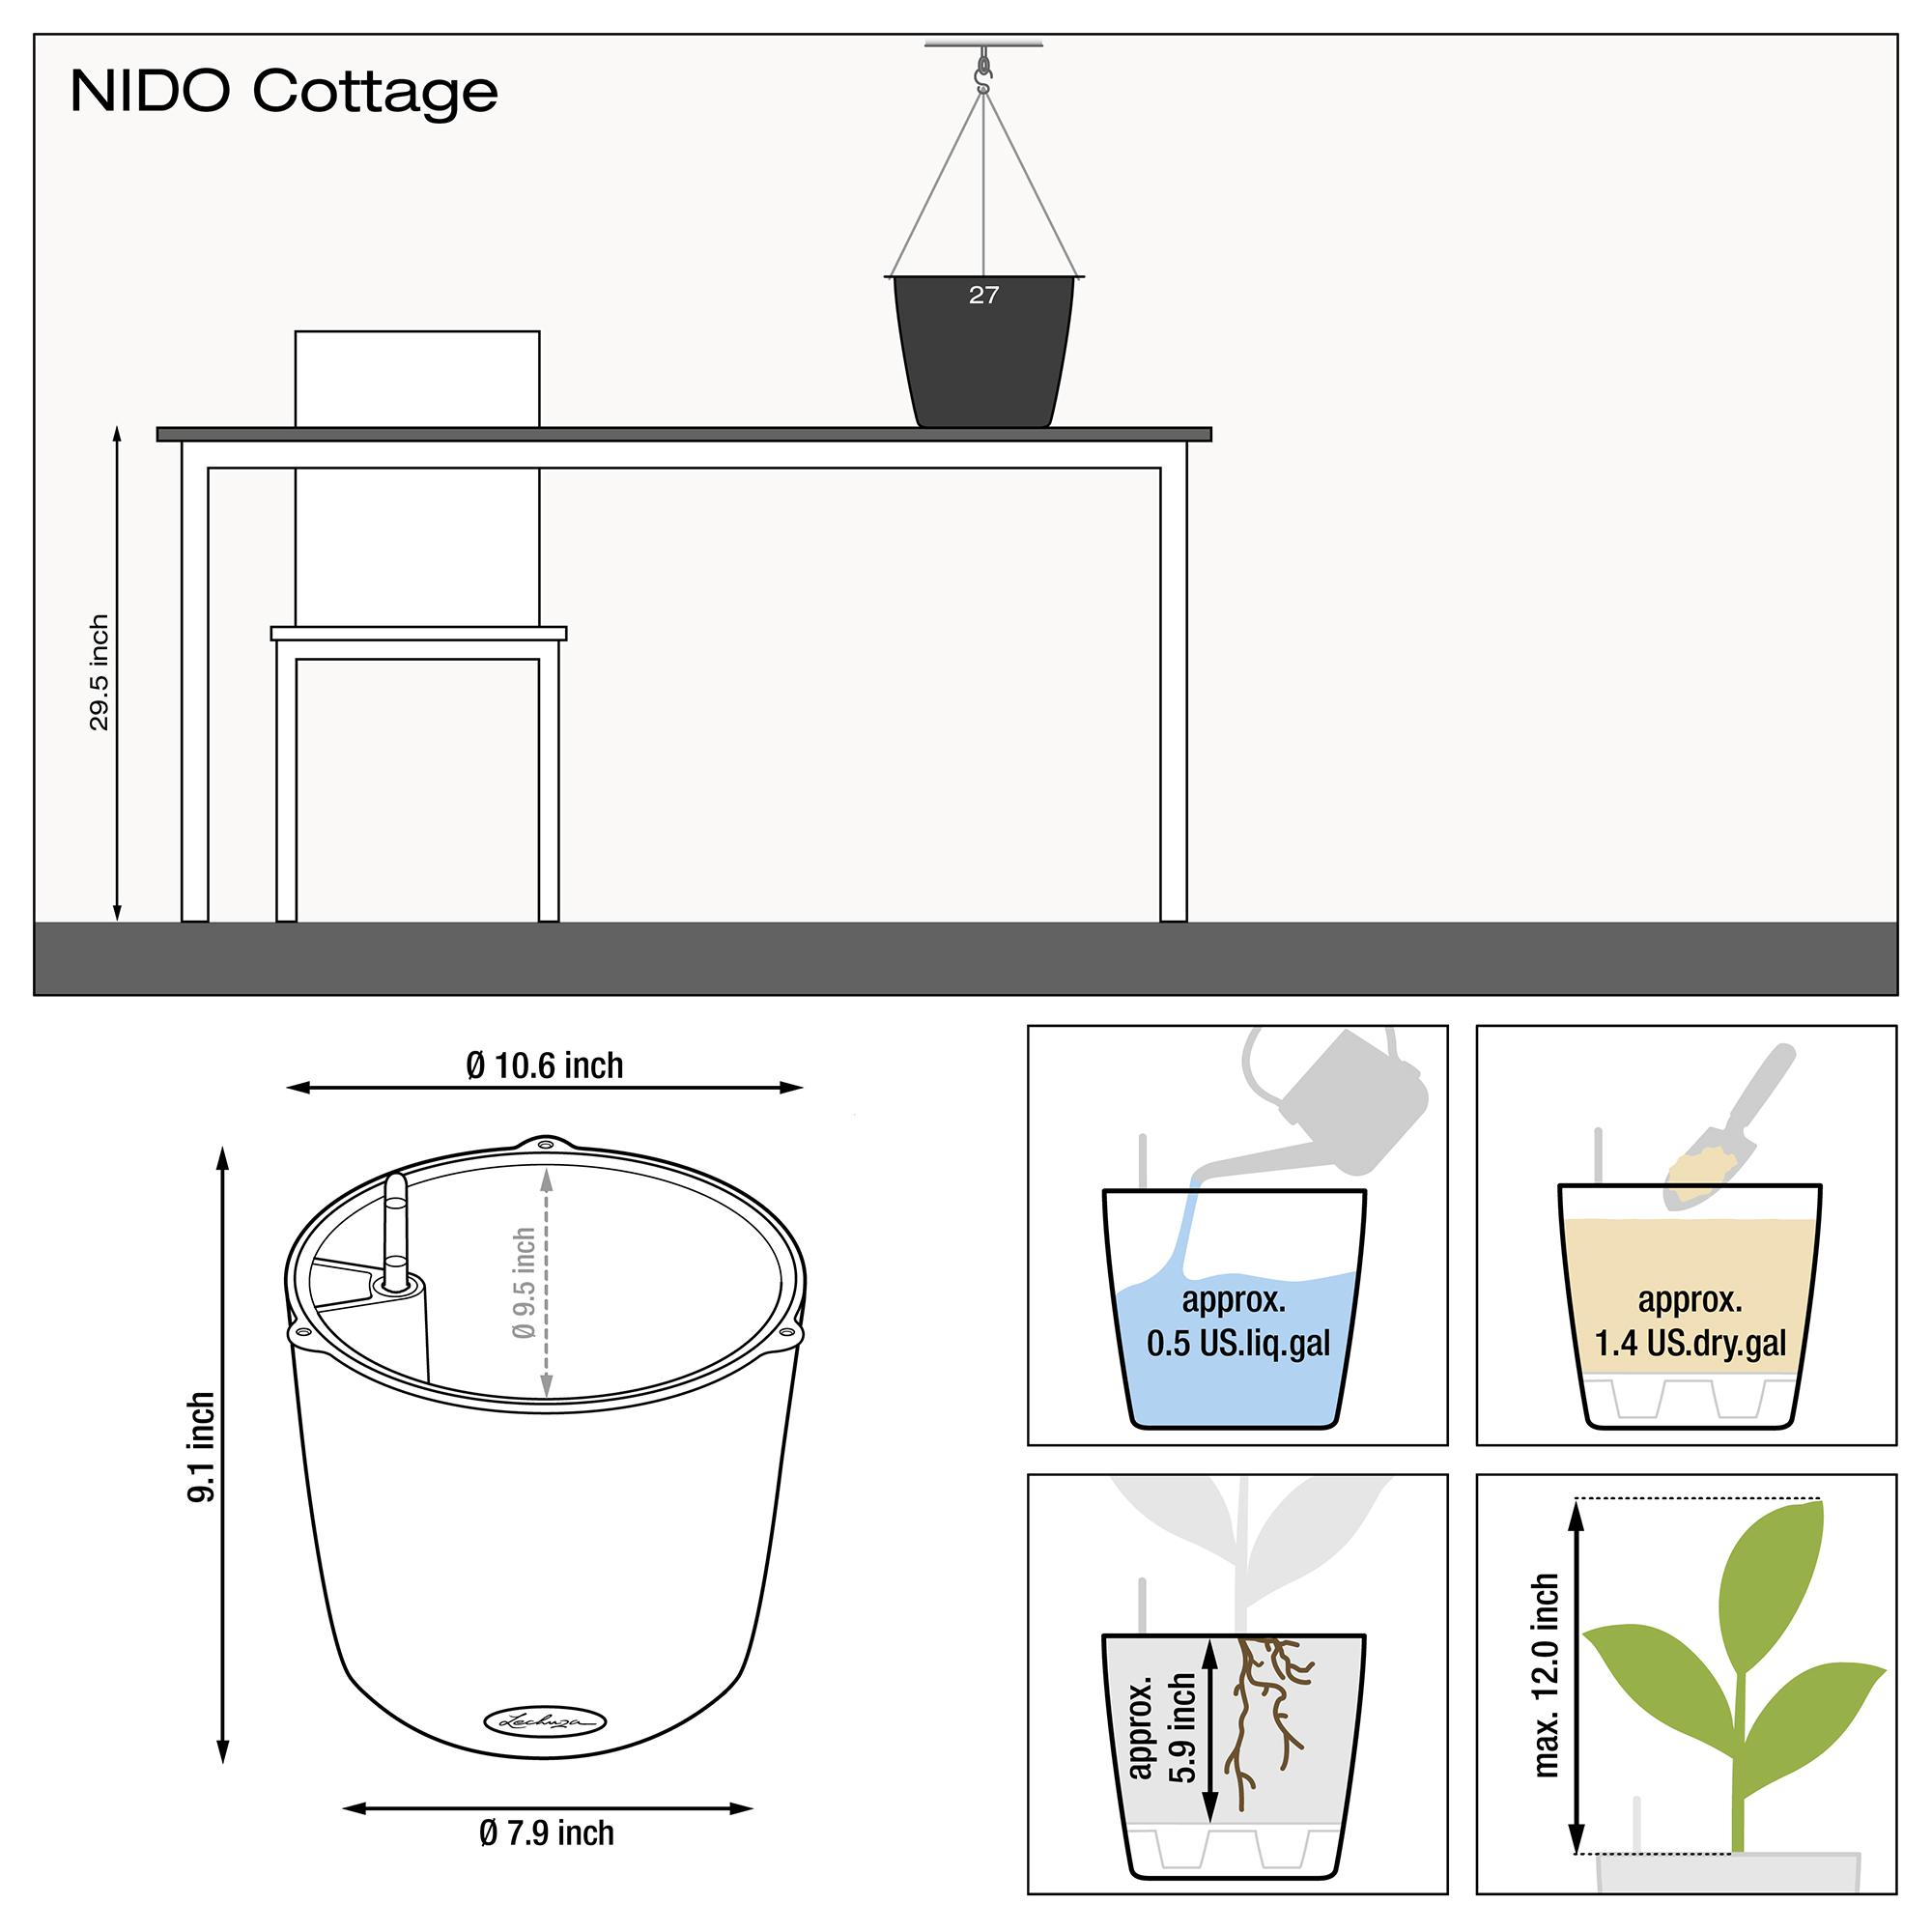 le_nido-cottage_product_addi_nz_us